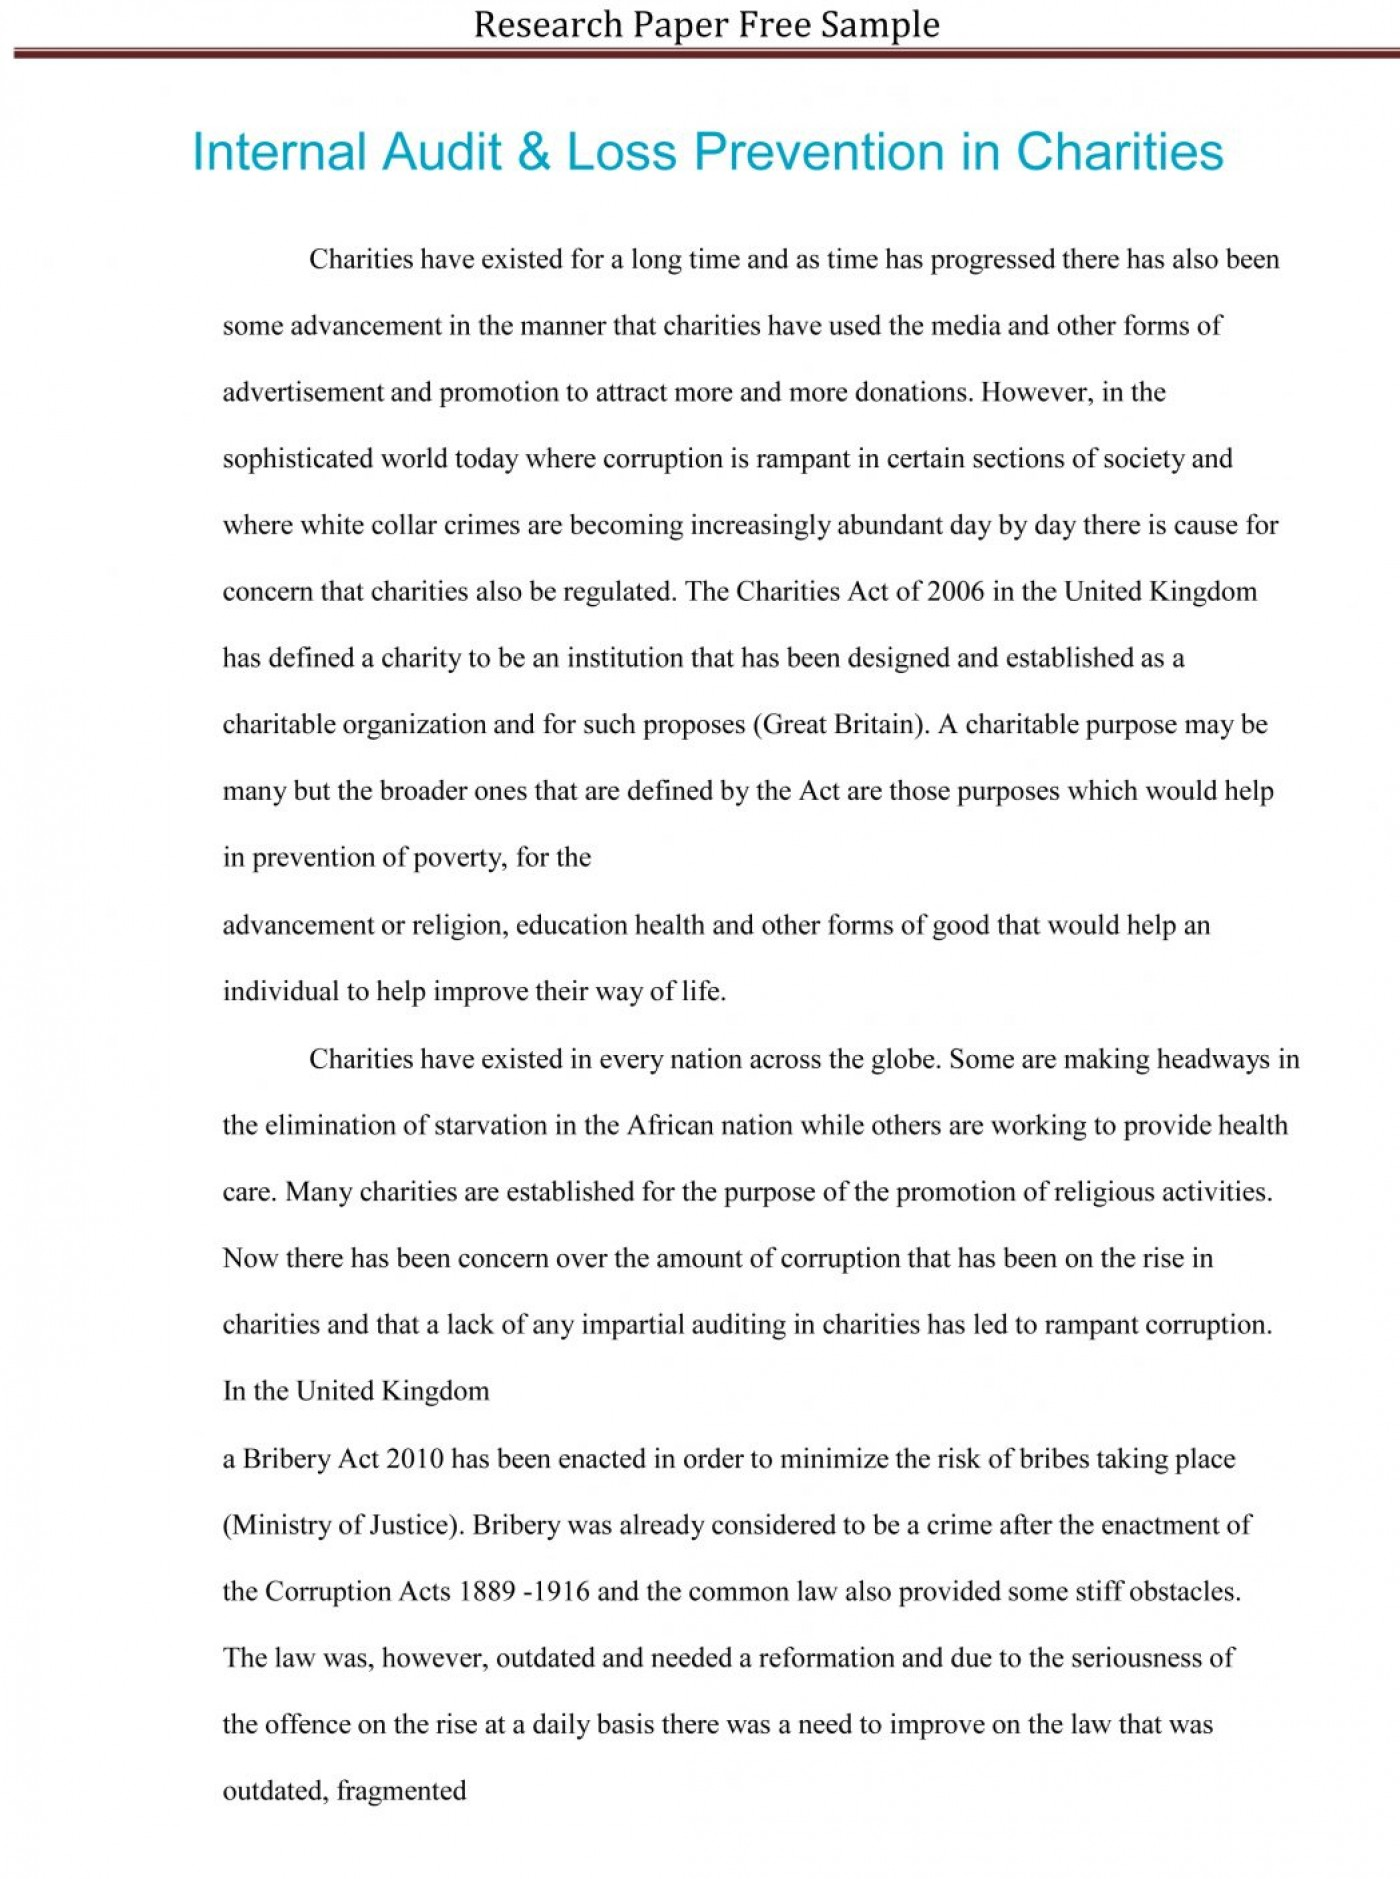 Act perfect essay